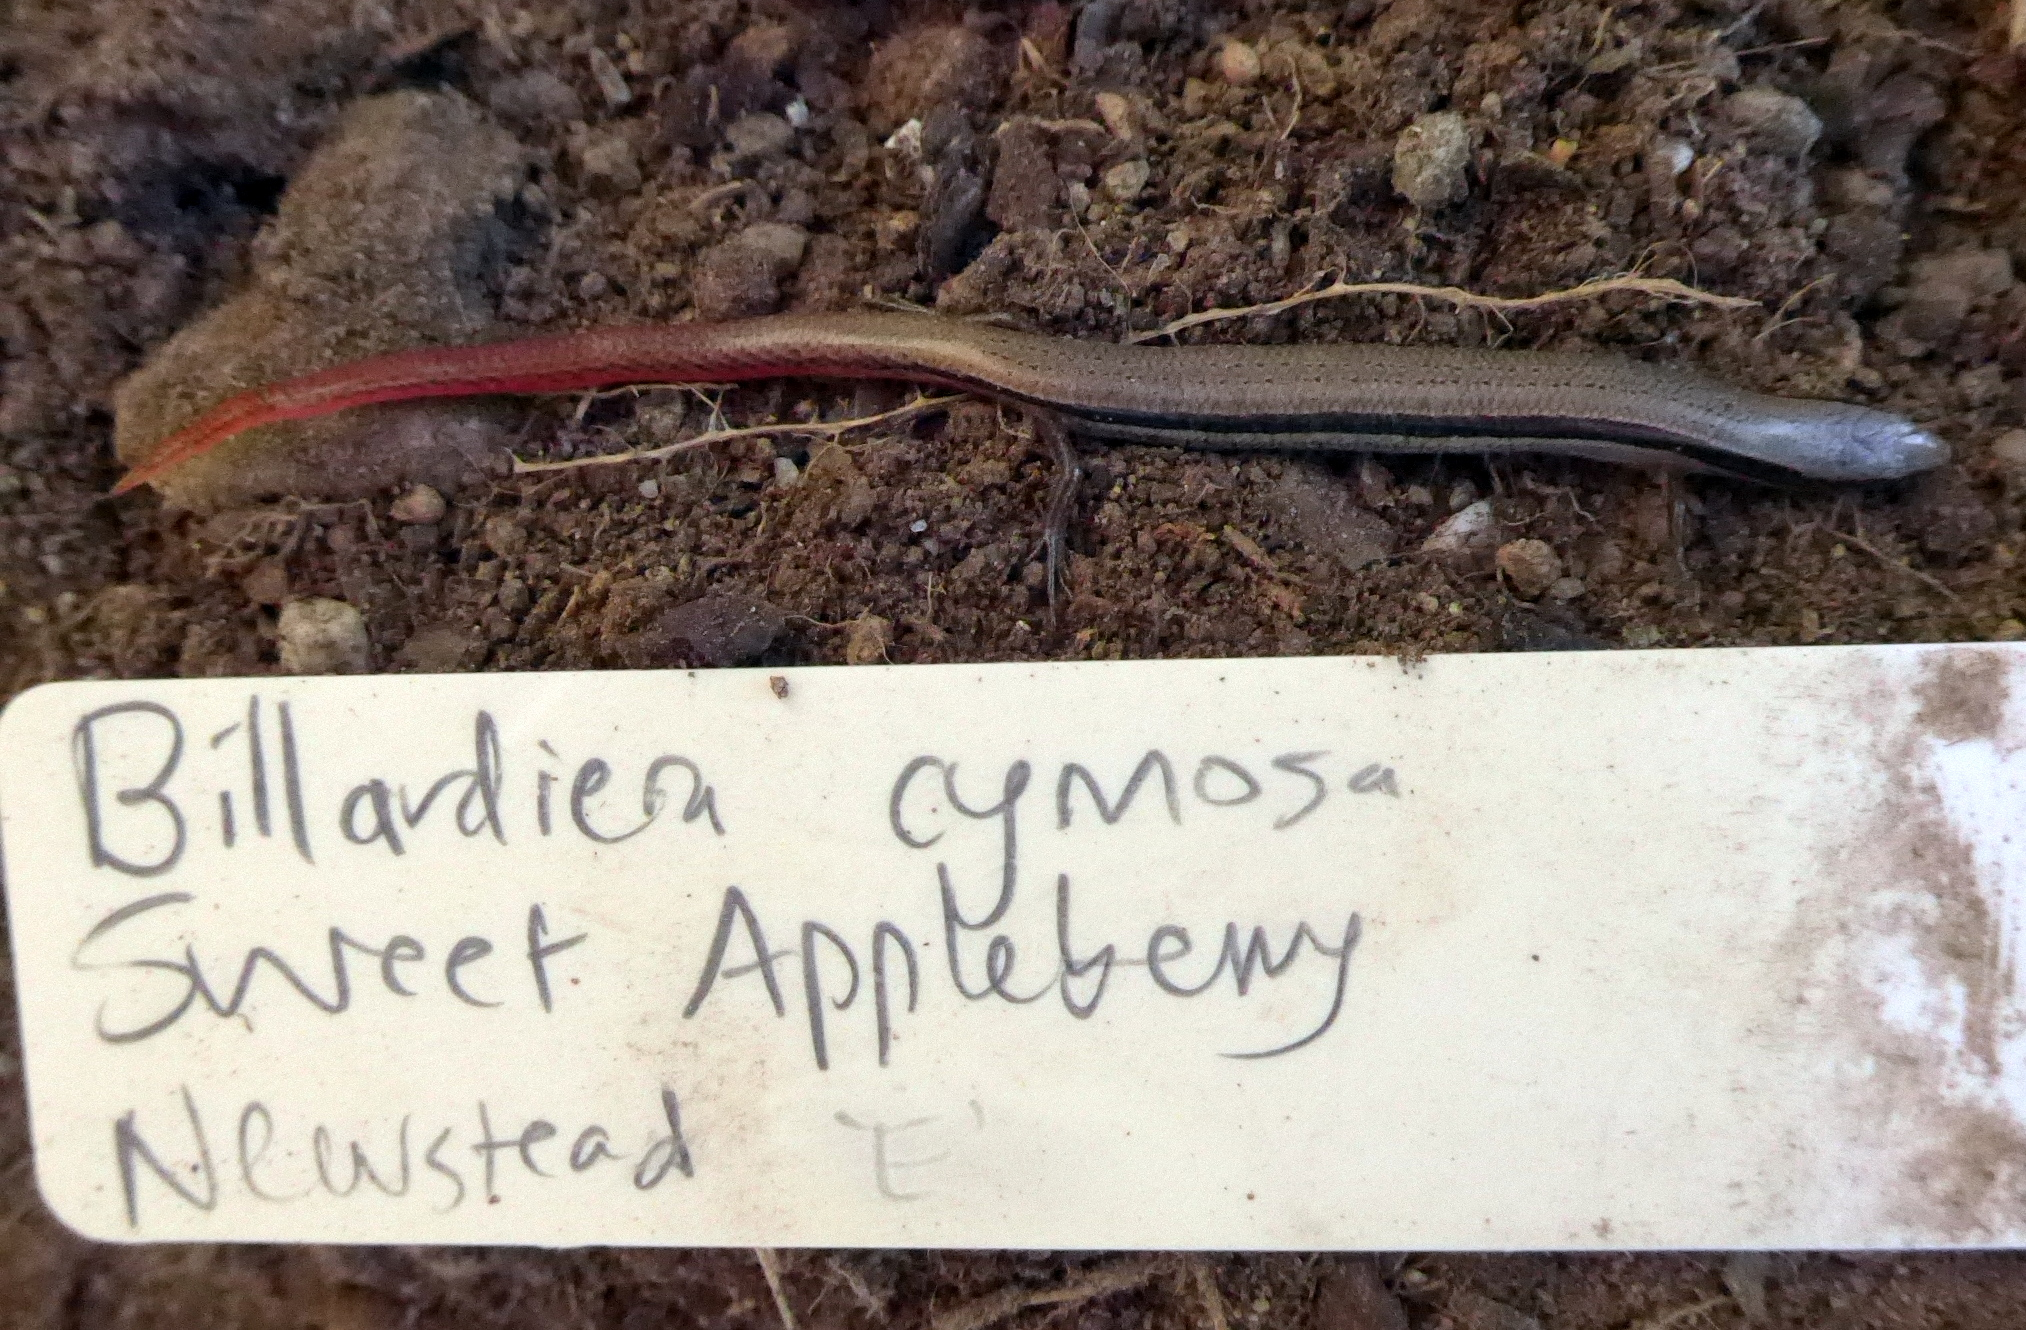 skink with bright red tail with plant label, Newstead 20 Sept 2018